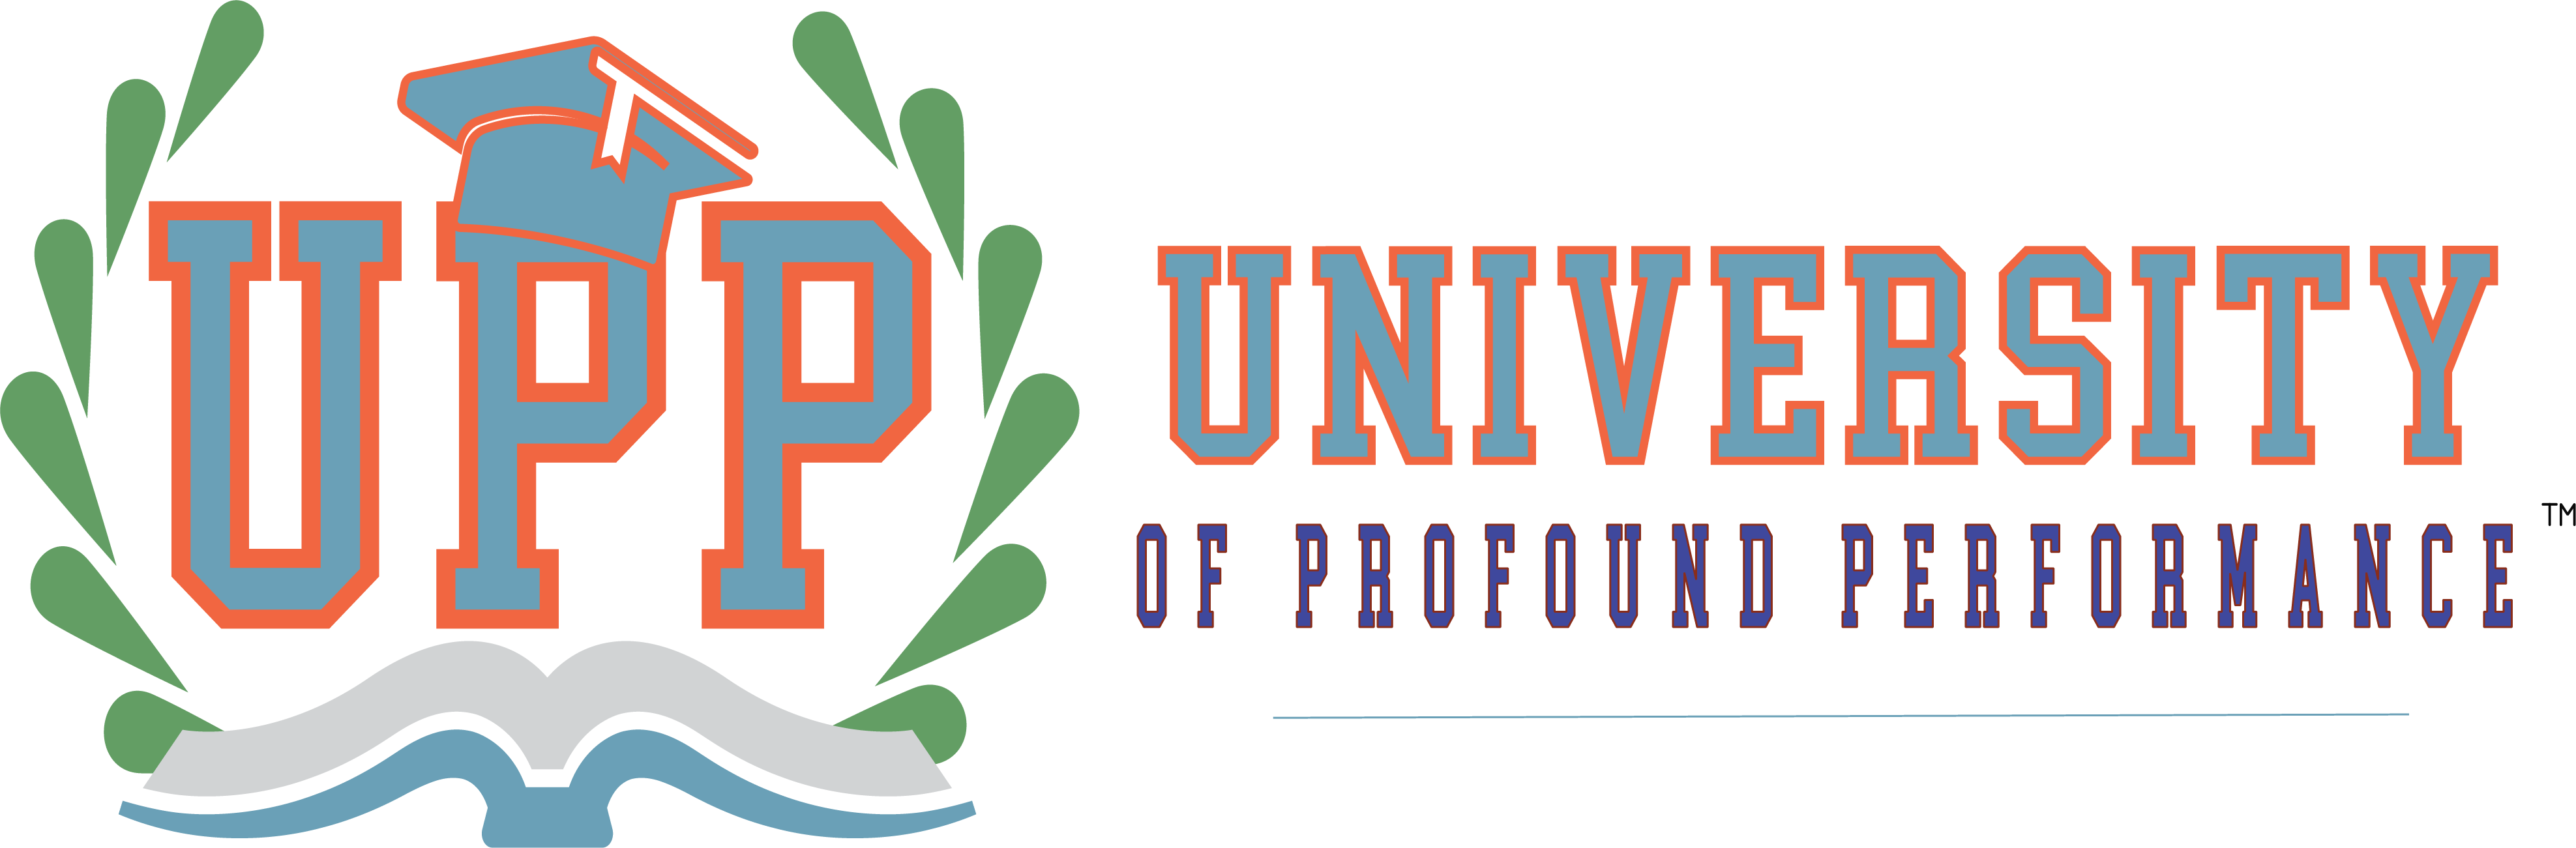 UPP (University of Profound Performance)